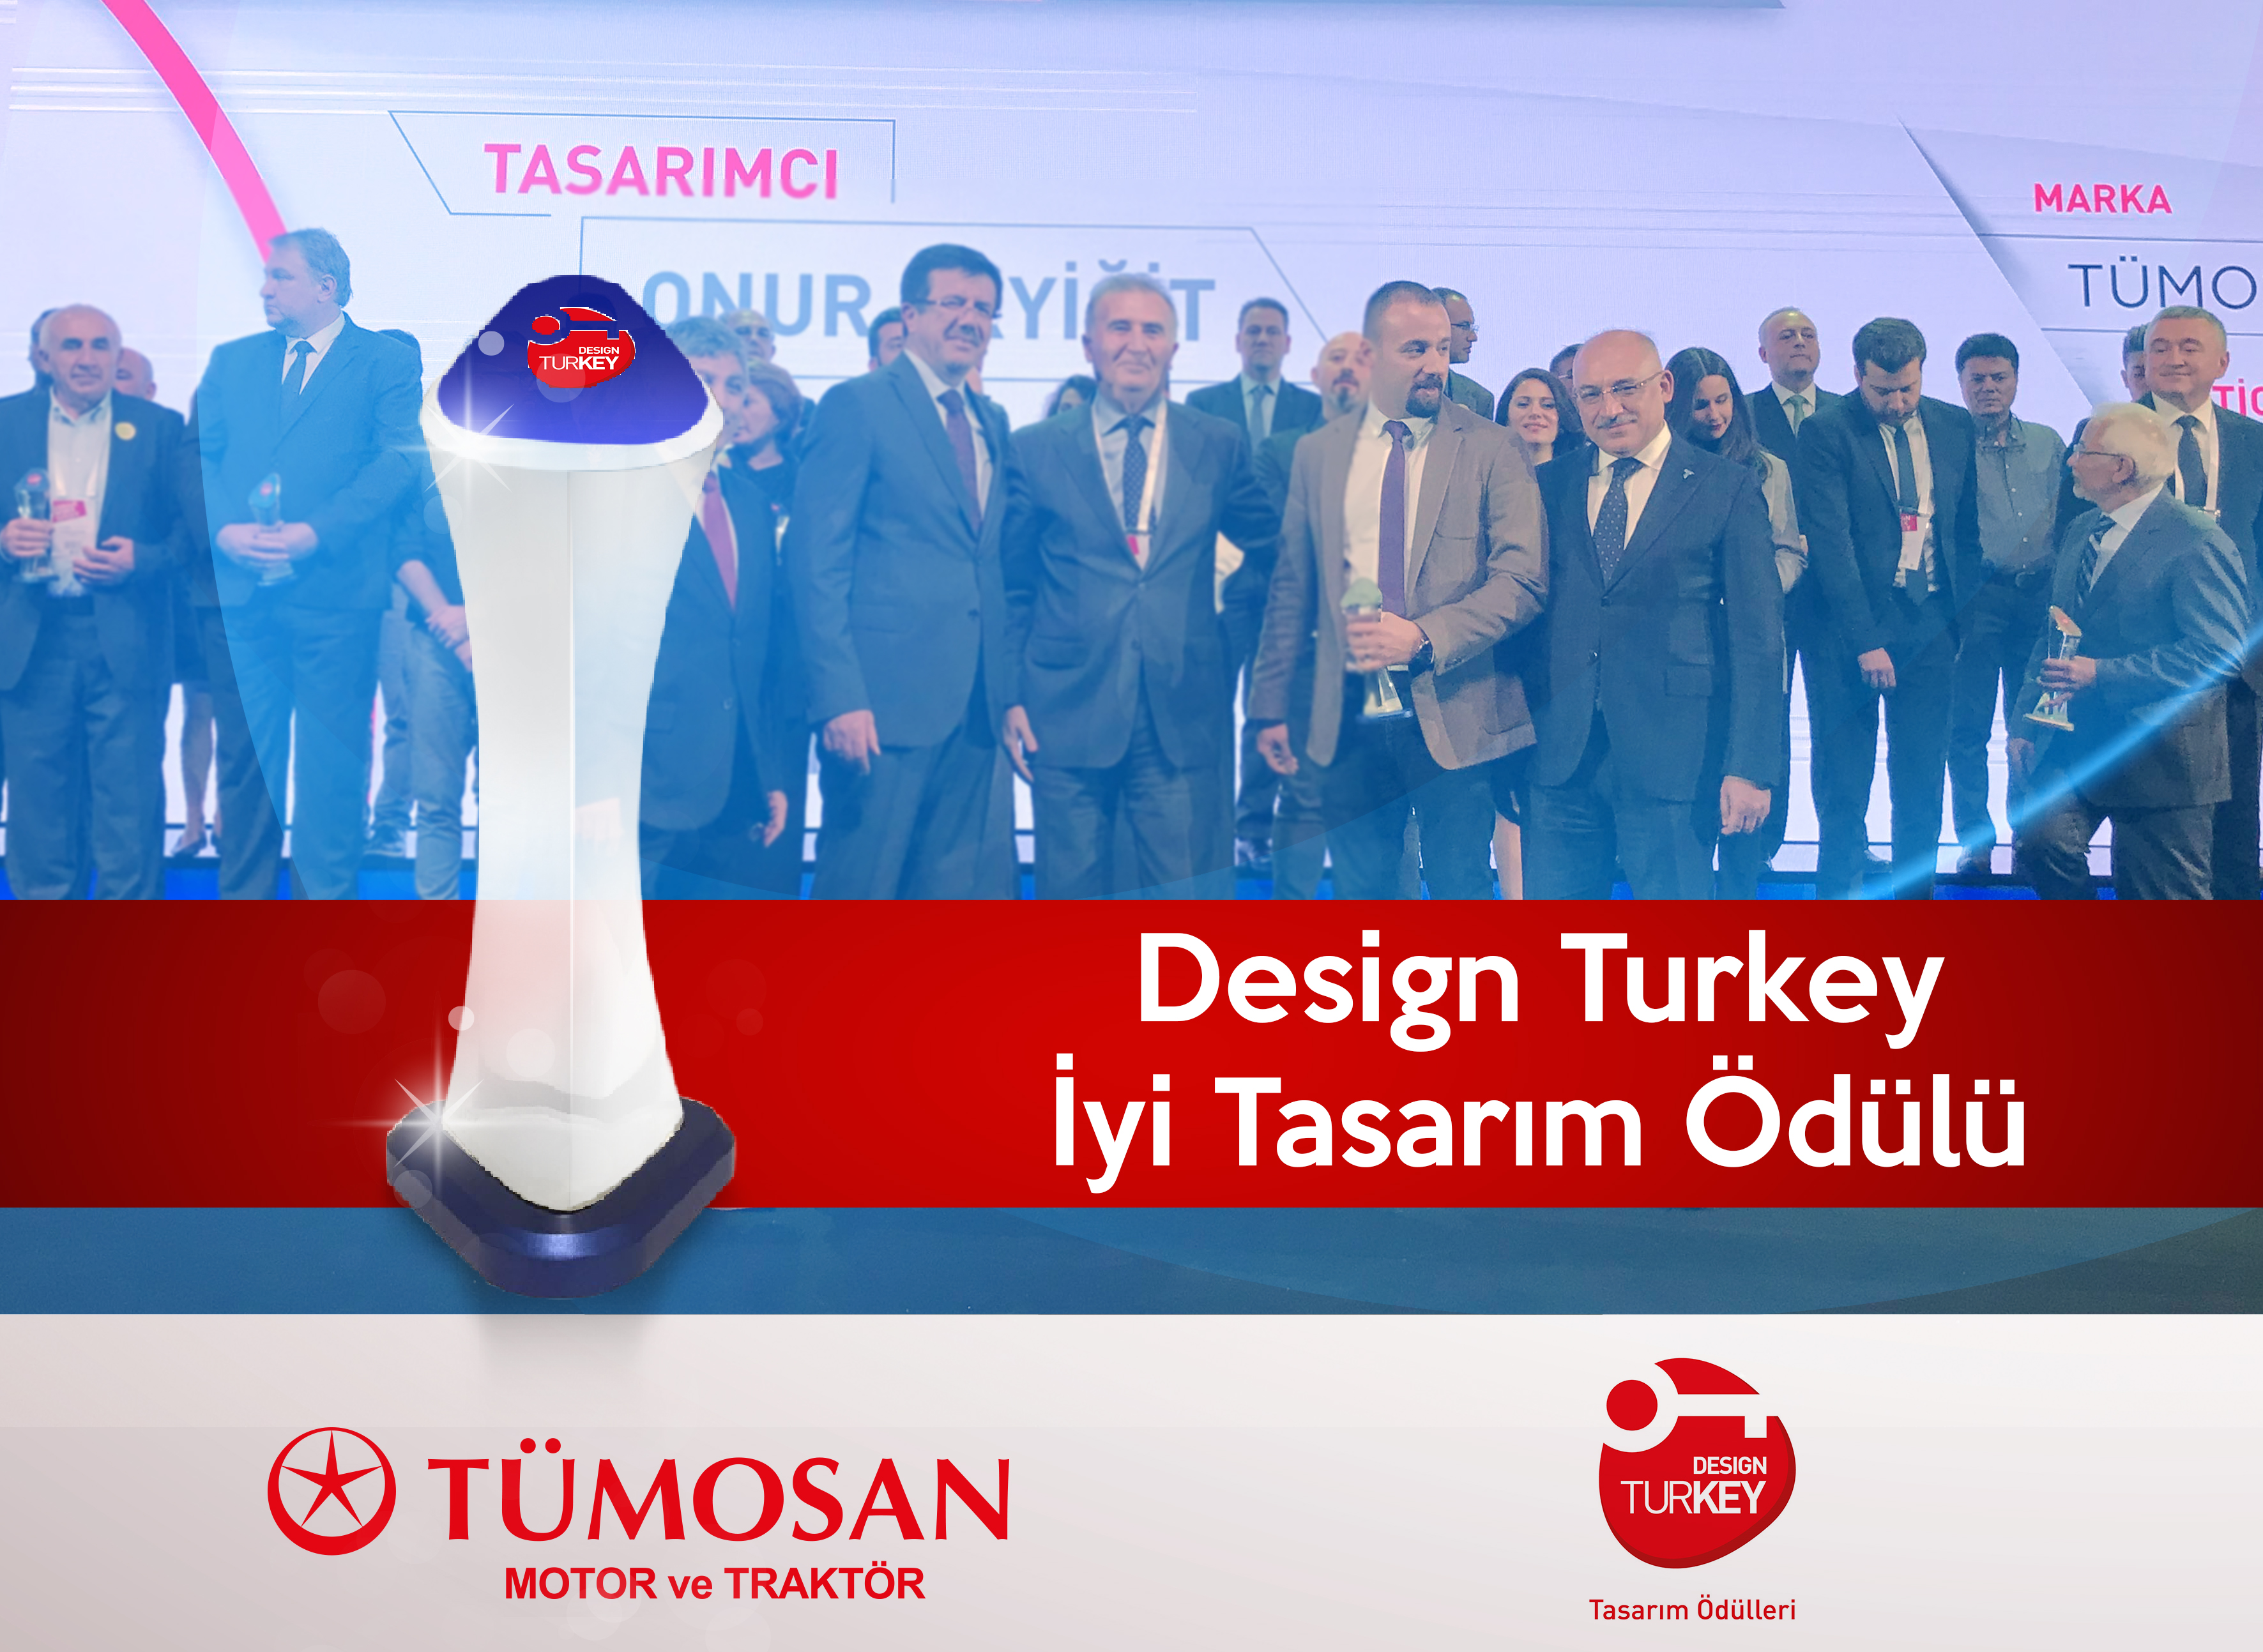 The Best Design Award Goes to the TÜMOSAN Tractors